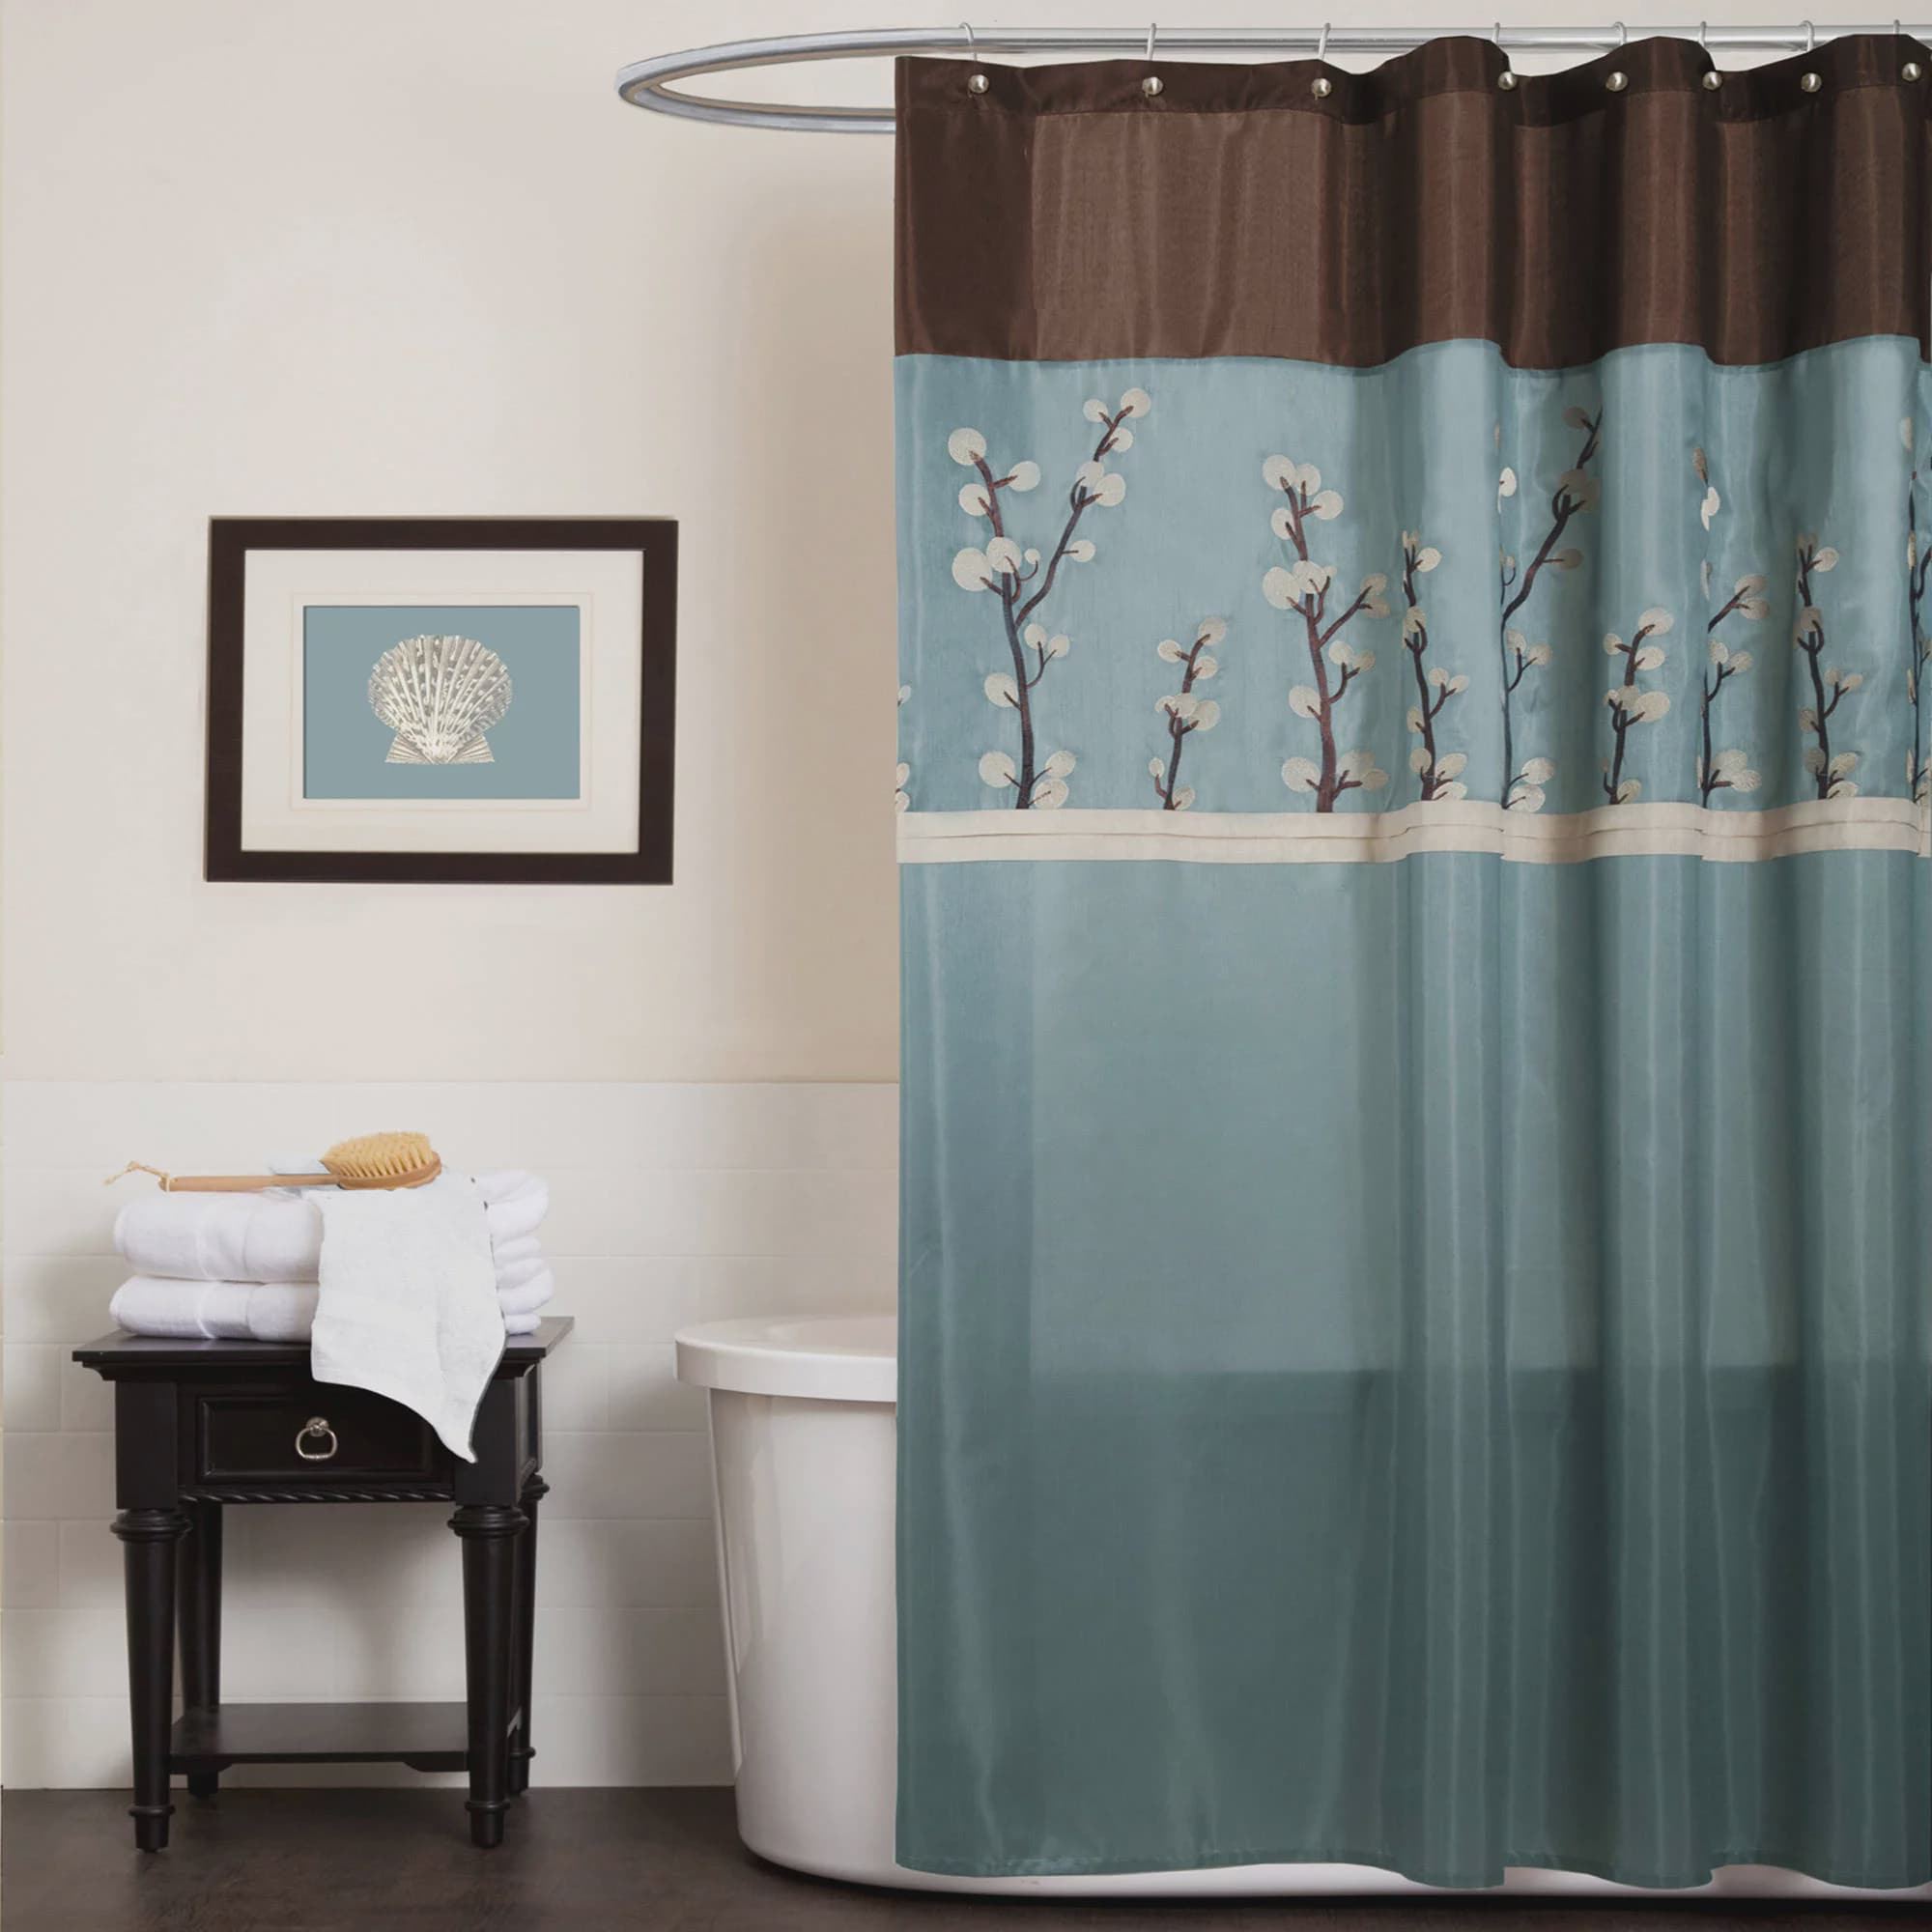 Cocoa Flower Shower Curtain   Walmart com. Yellow And Teal Shower Curtain. Home Design Ideas